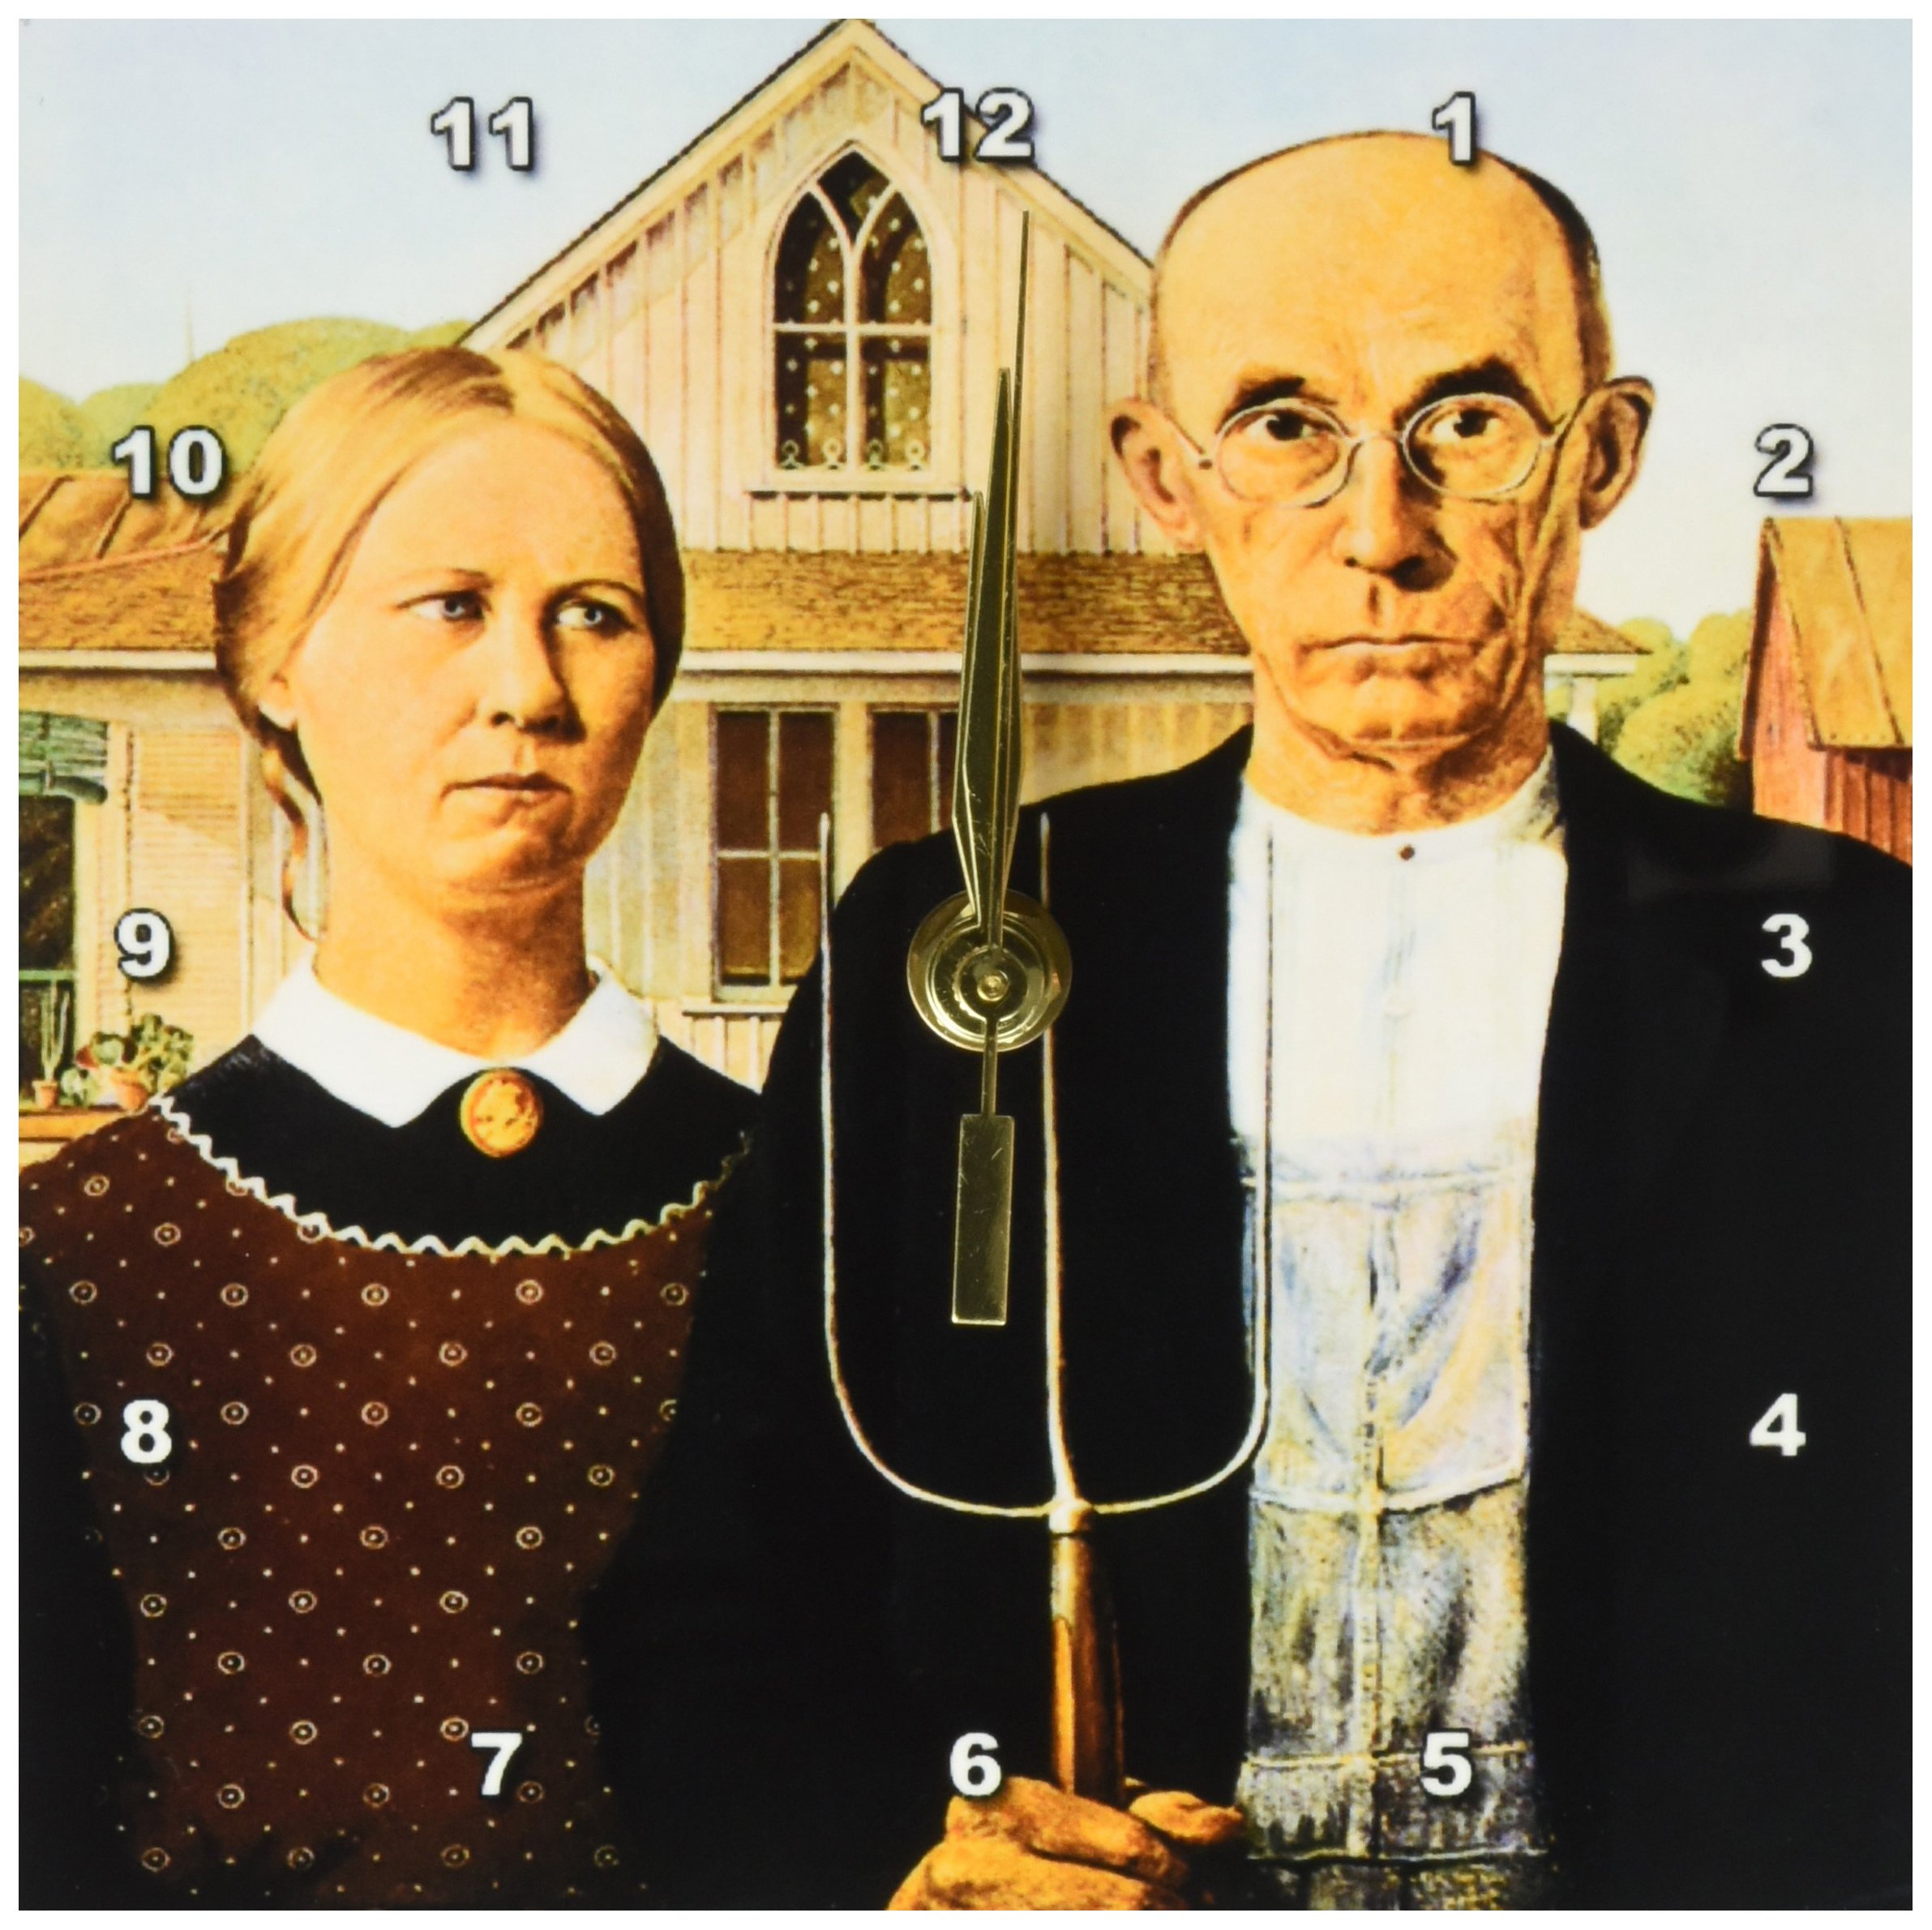 3dRose dc_130186_1 American Gothic by Grant Wood Desk Clock, 6 by 6'' by 3dRose (Image #1)